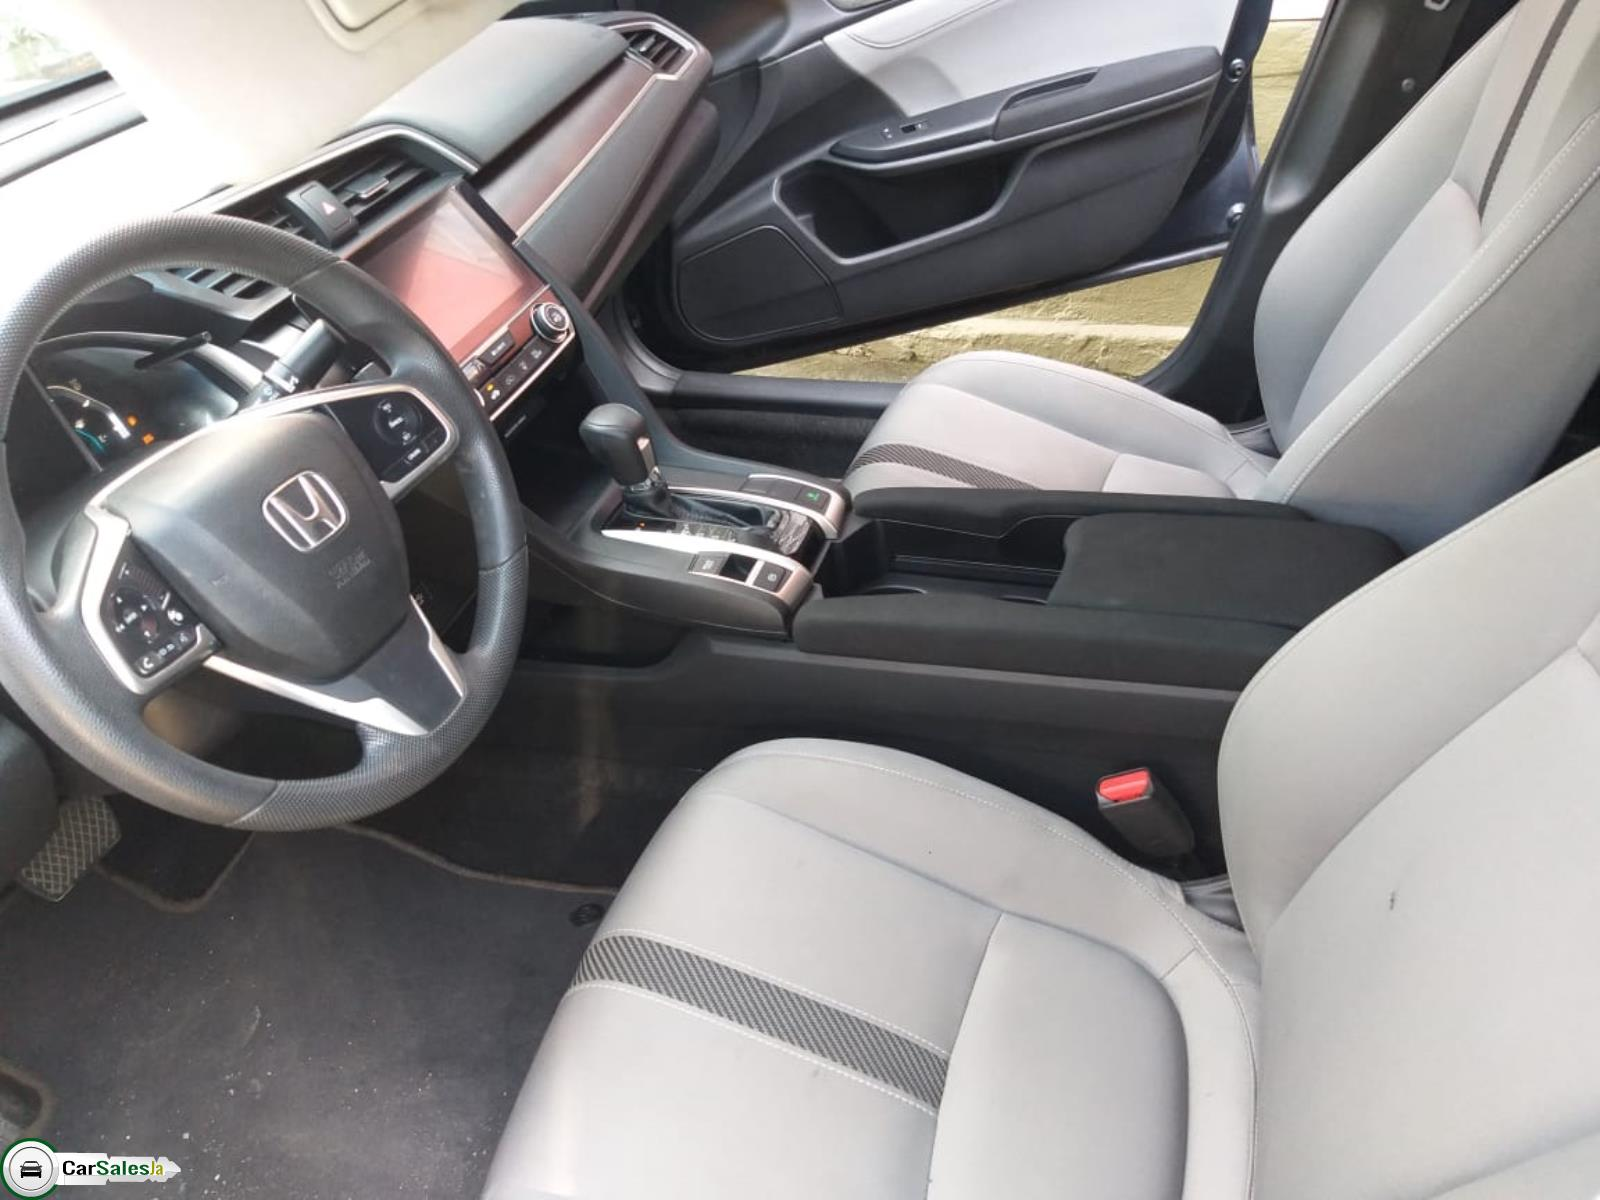 Cars for sale in Jamaica, Honda Civic Car for sale in Jamaica